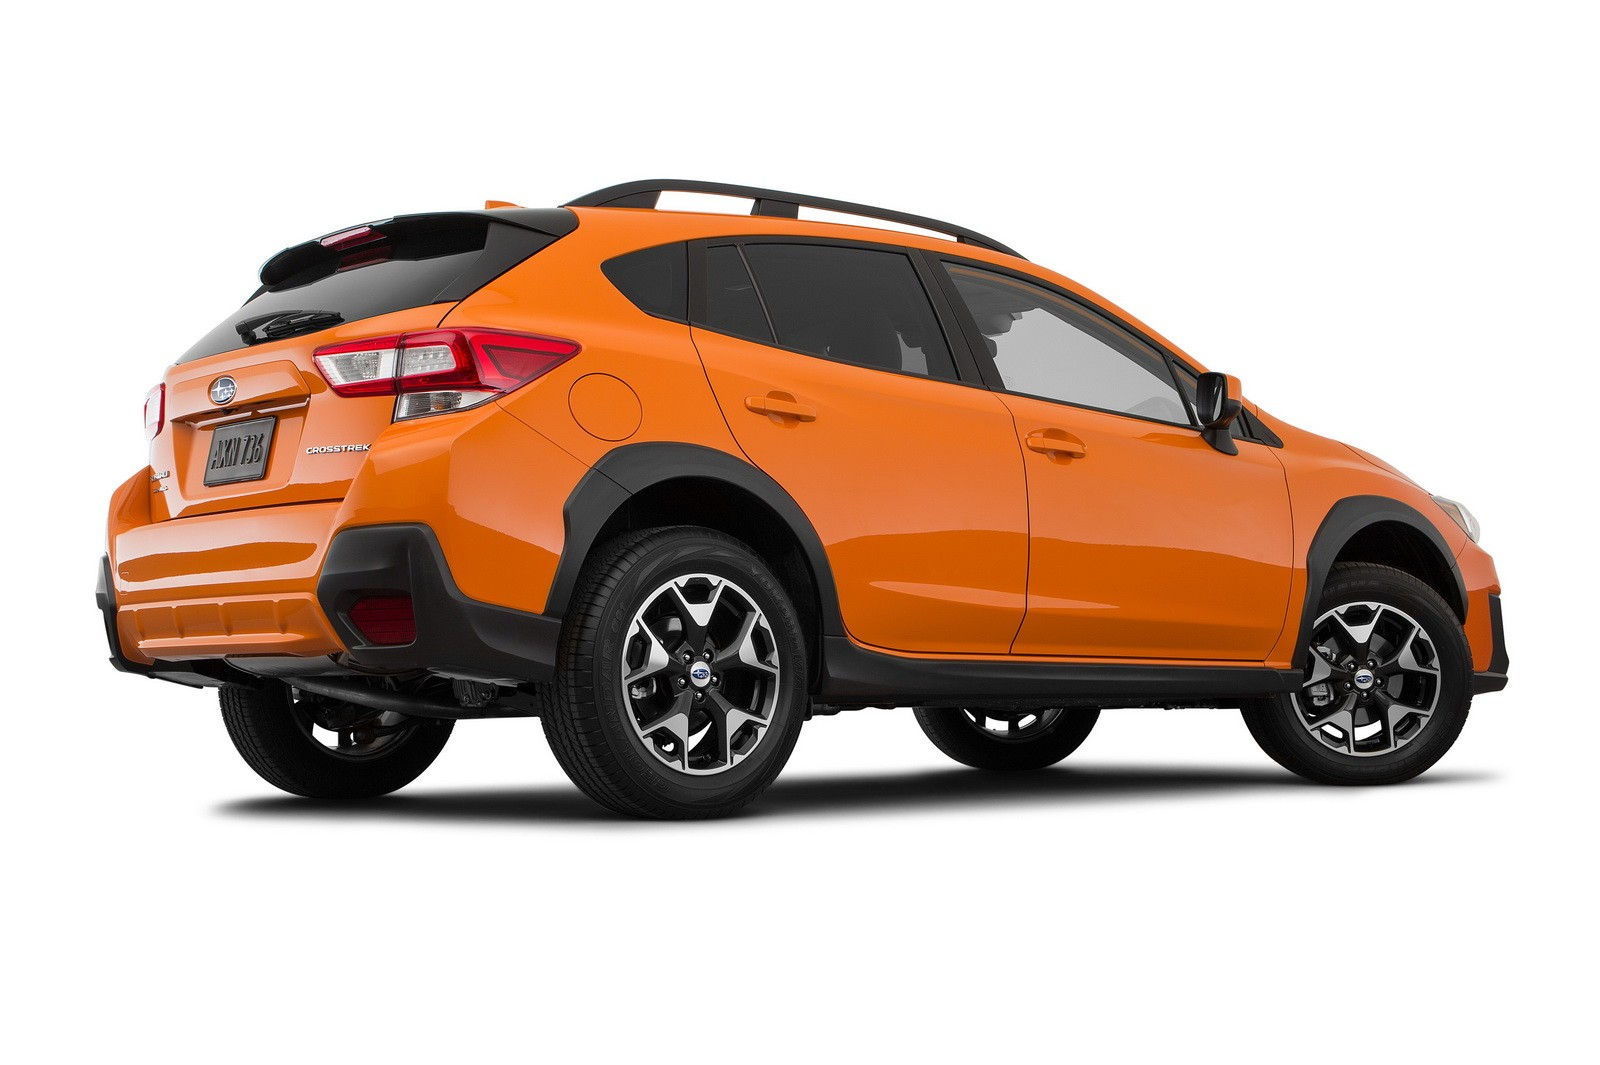 all new 2018 subaru crosstrek priced from 21 795 autoevolution. Black Bedroom Furniture Sets. Home Design Ideas